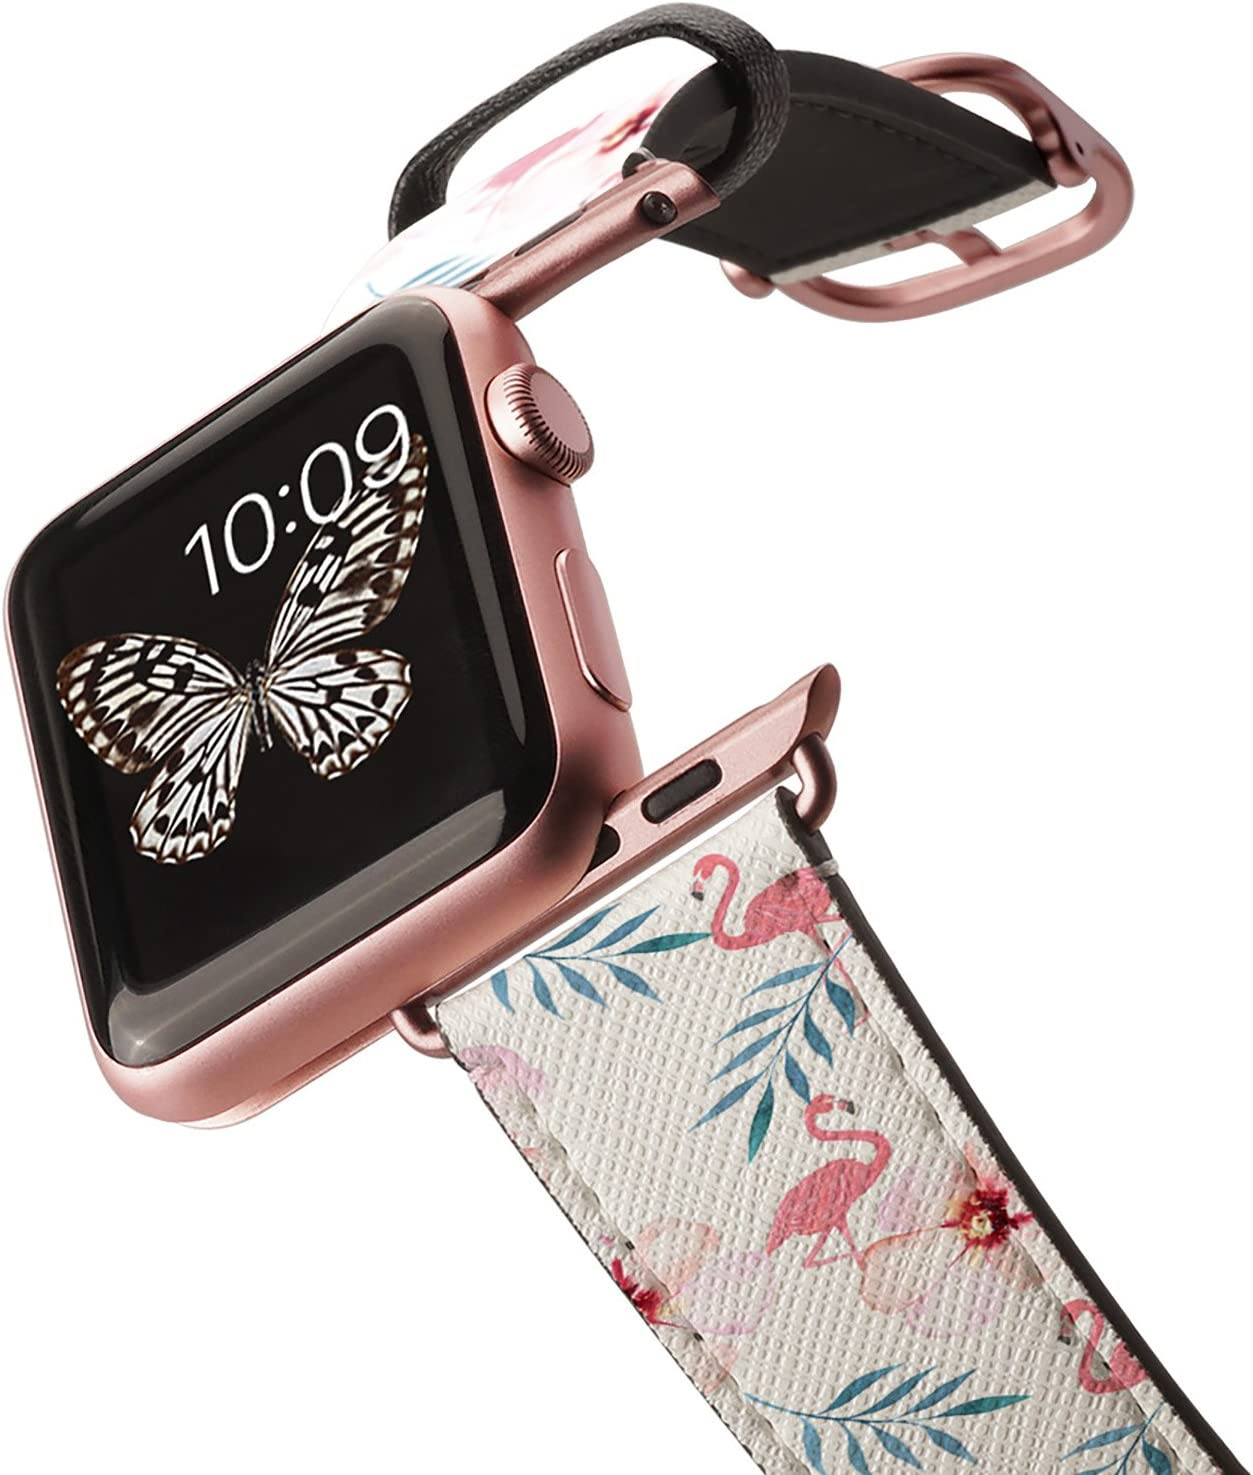 Casetify Floral Flower Bands for Apple Watch Bands 38mm 42mm with Rose Gold Stainless Steel Buckle Replacement Band for iWatch Apple Watch Series 4 Series 3 Series 2 Series 1 (Floral & Pink Flamingo)